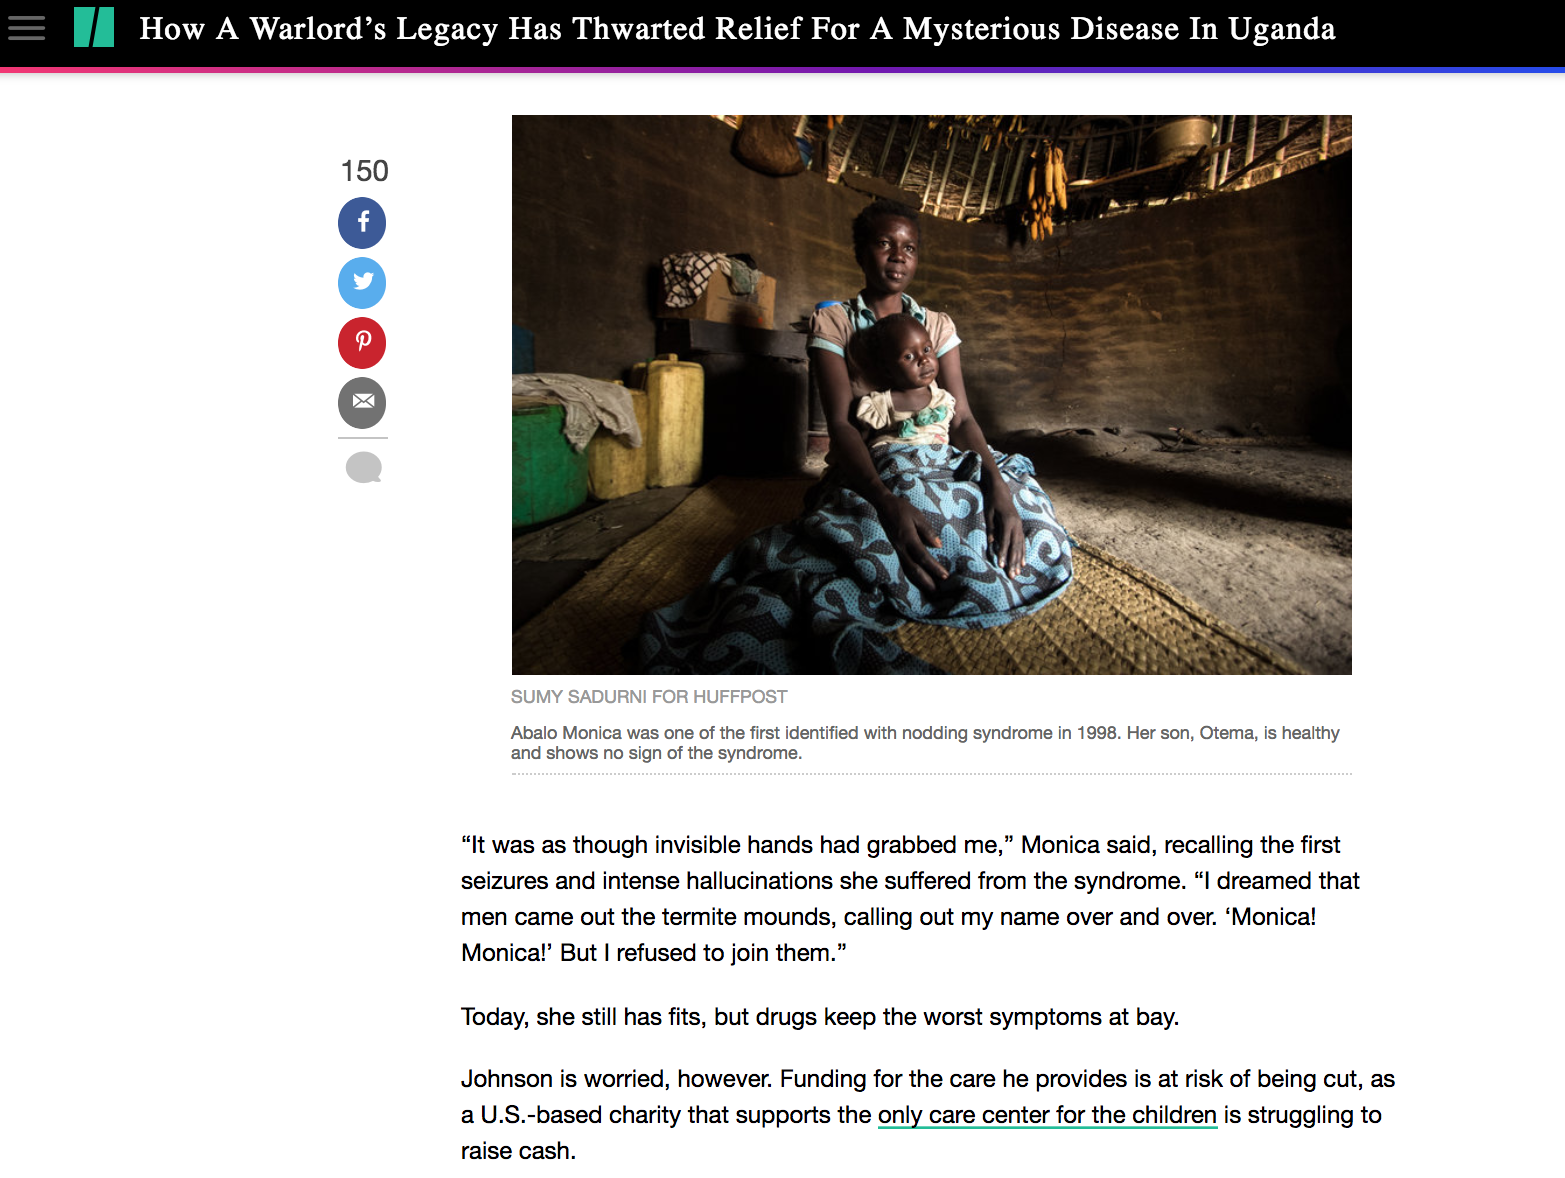 How a warlords legacy has thwarted relief for a mysterious disease in Uganda // Huffington Post 2.2018